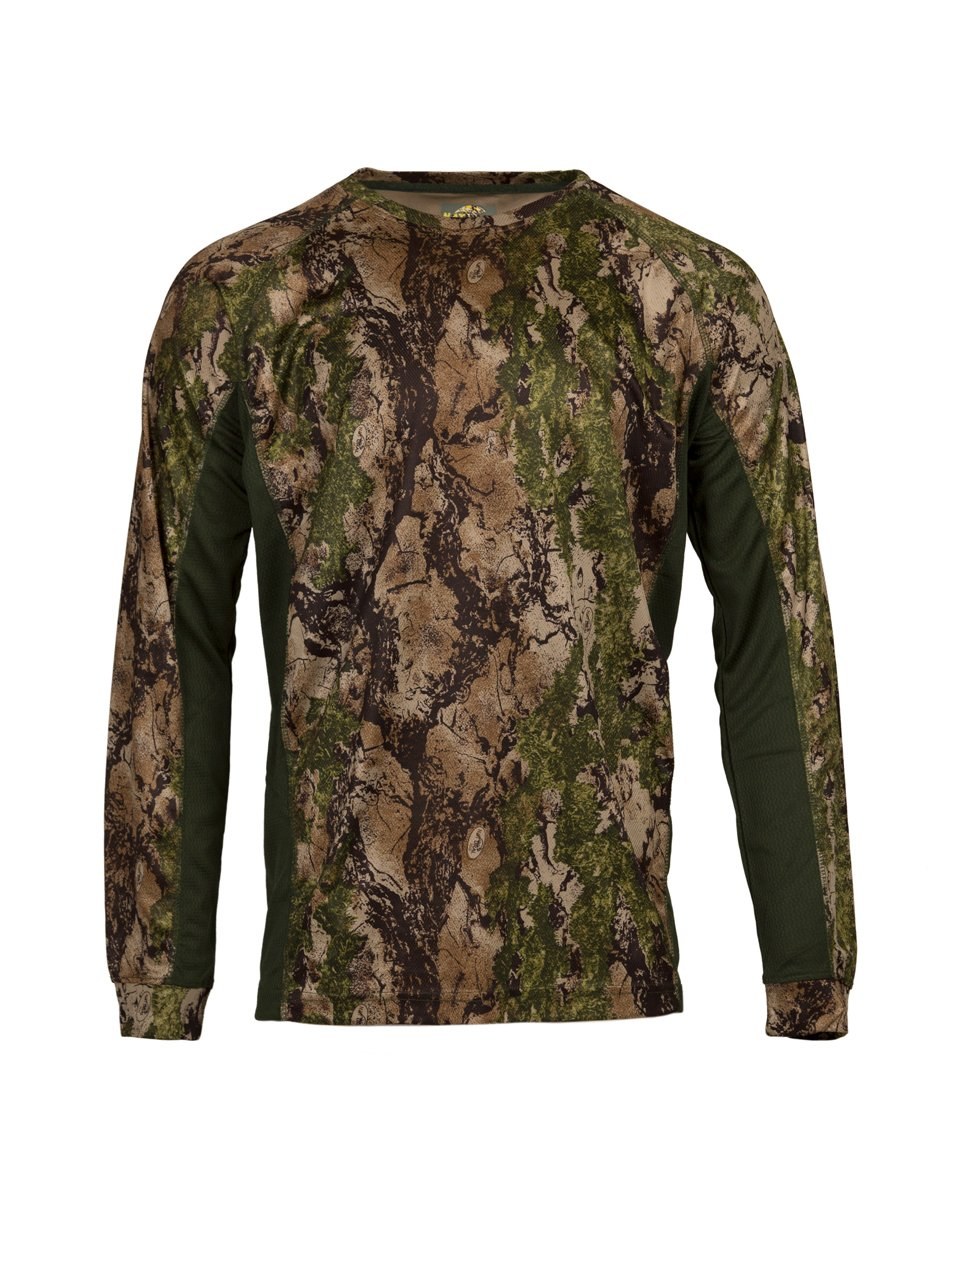 c61e891c69fb7 100% POLYESTER T-SHIRT: Our Natural Gear camo shirt is made out of 100%  polyester material that is lightweight and breathable.